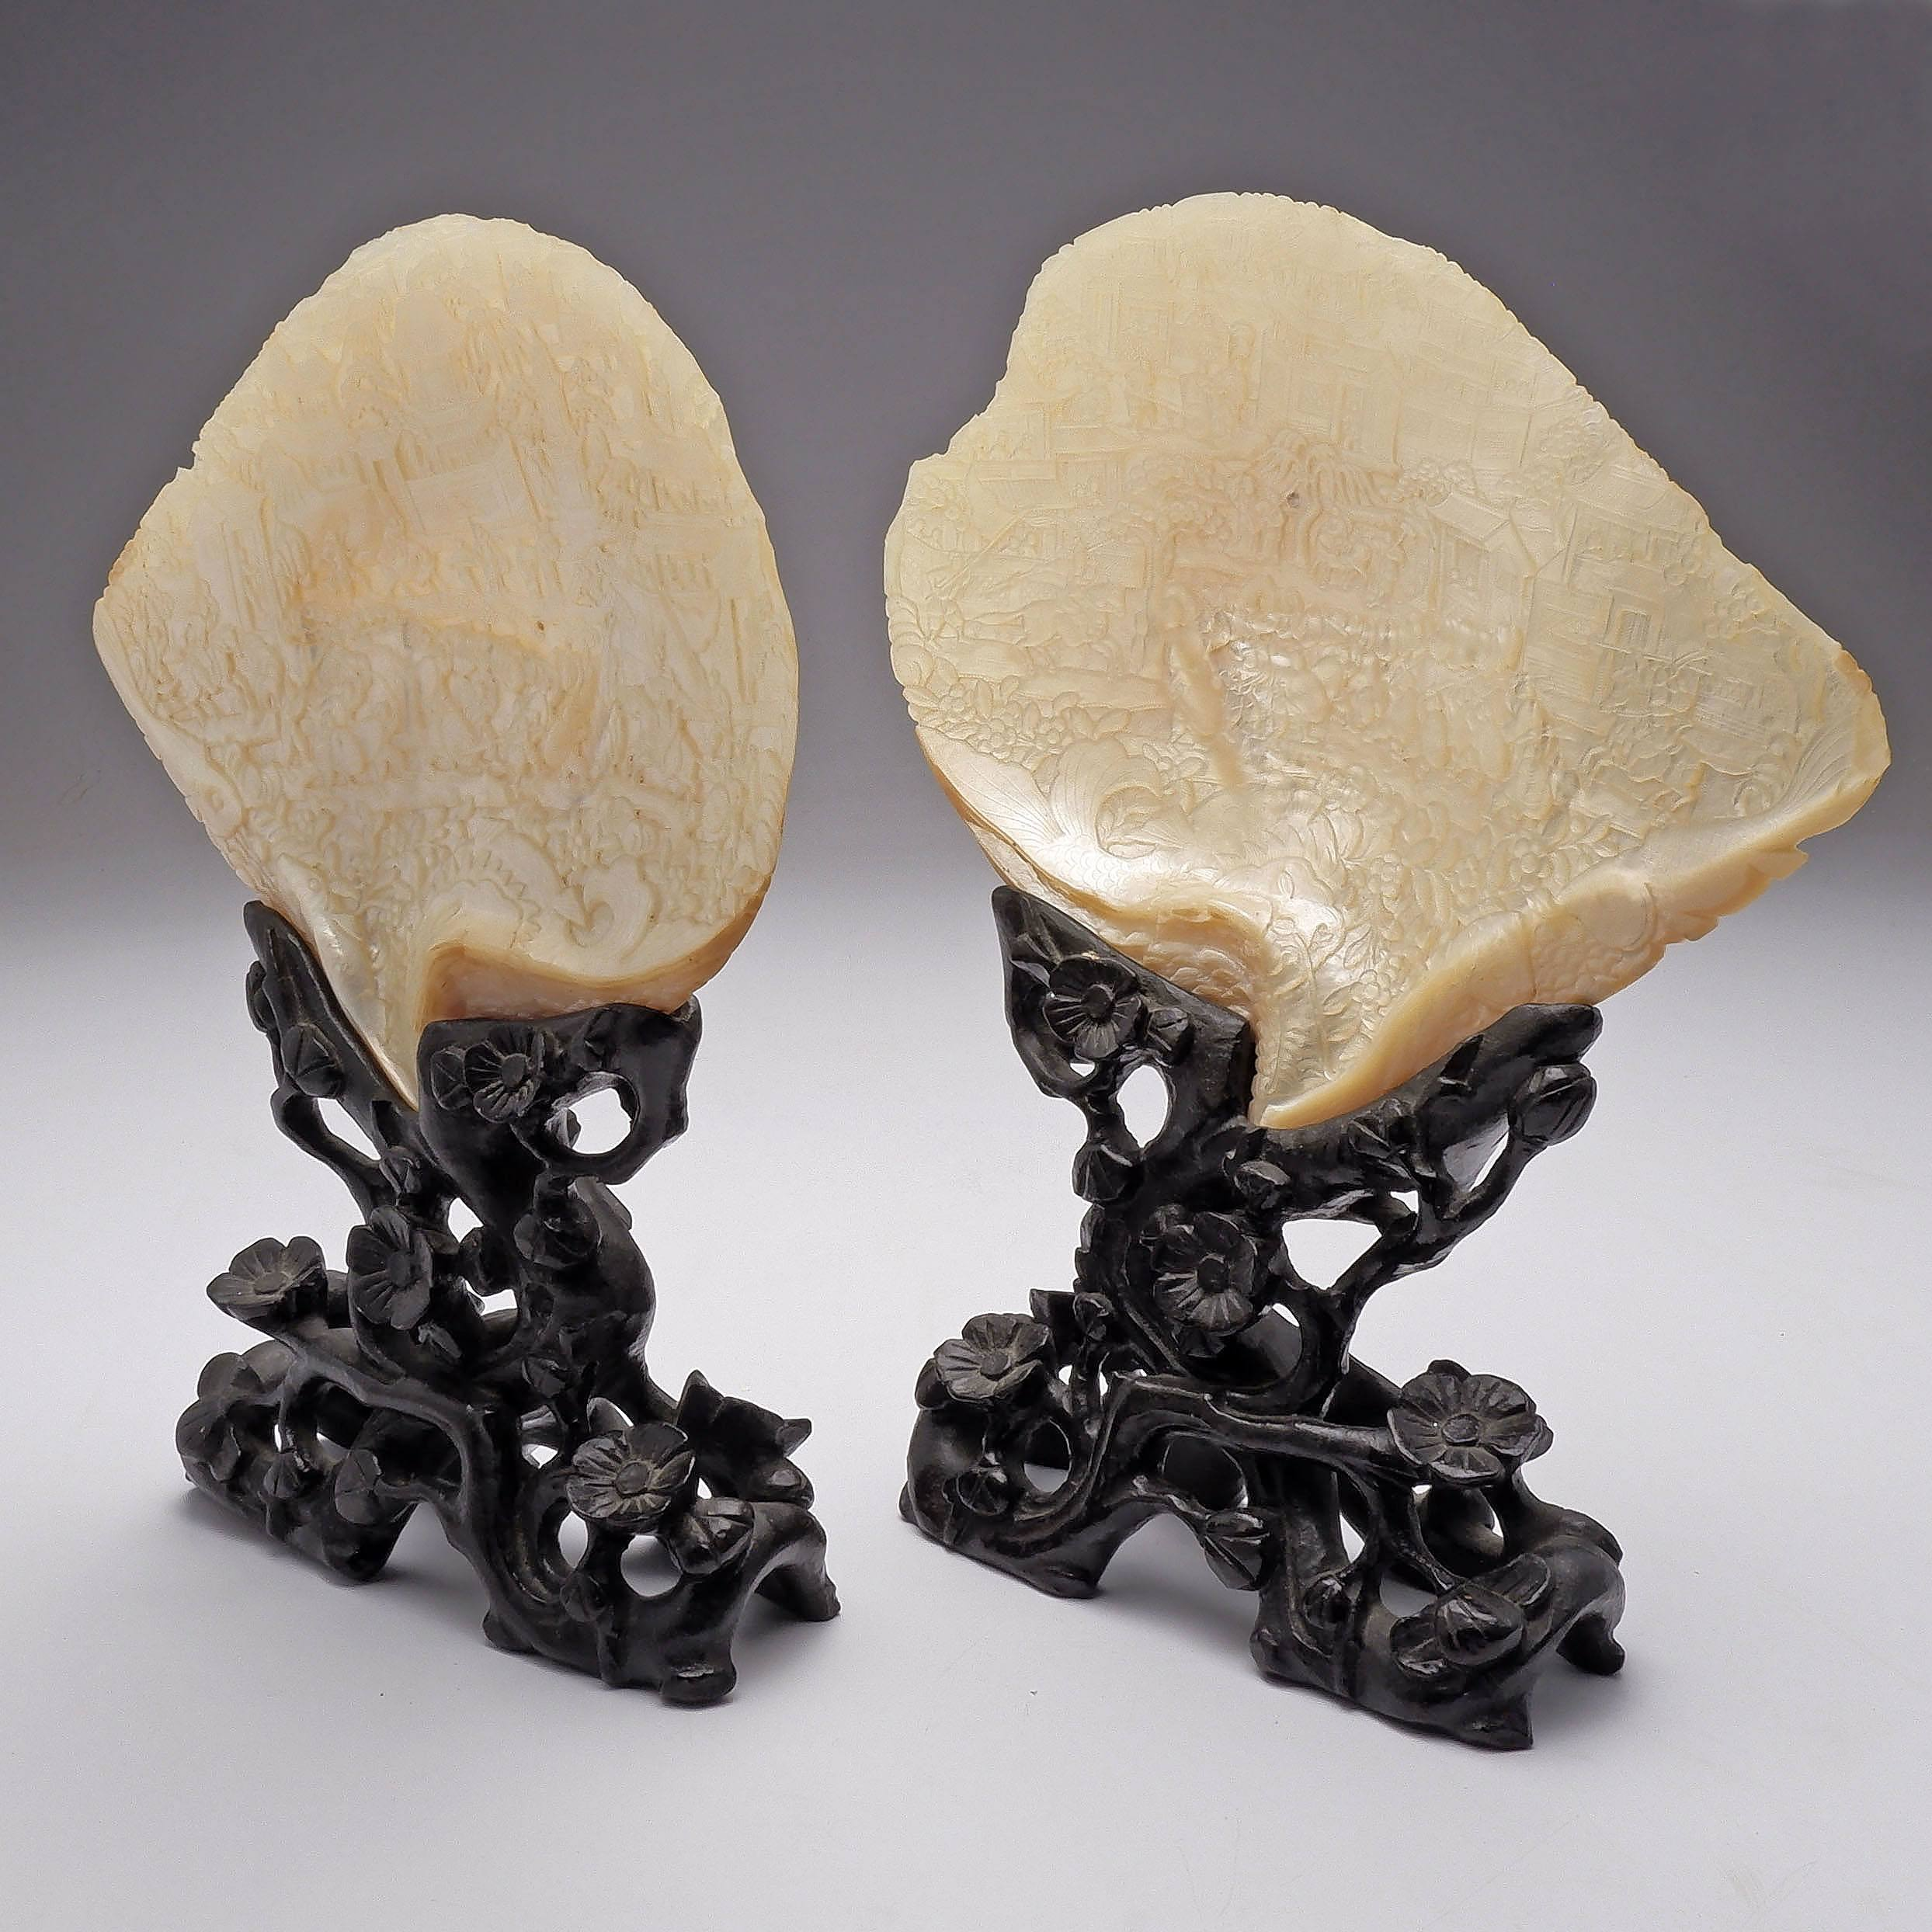 'Pair of Chinese Carved Mother of Pearl Shells on Hardwood Stands'